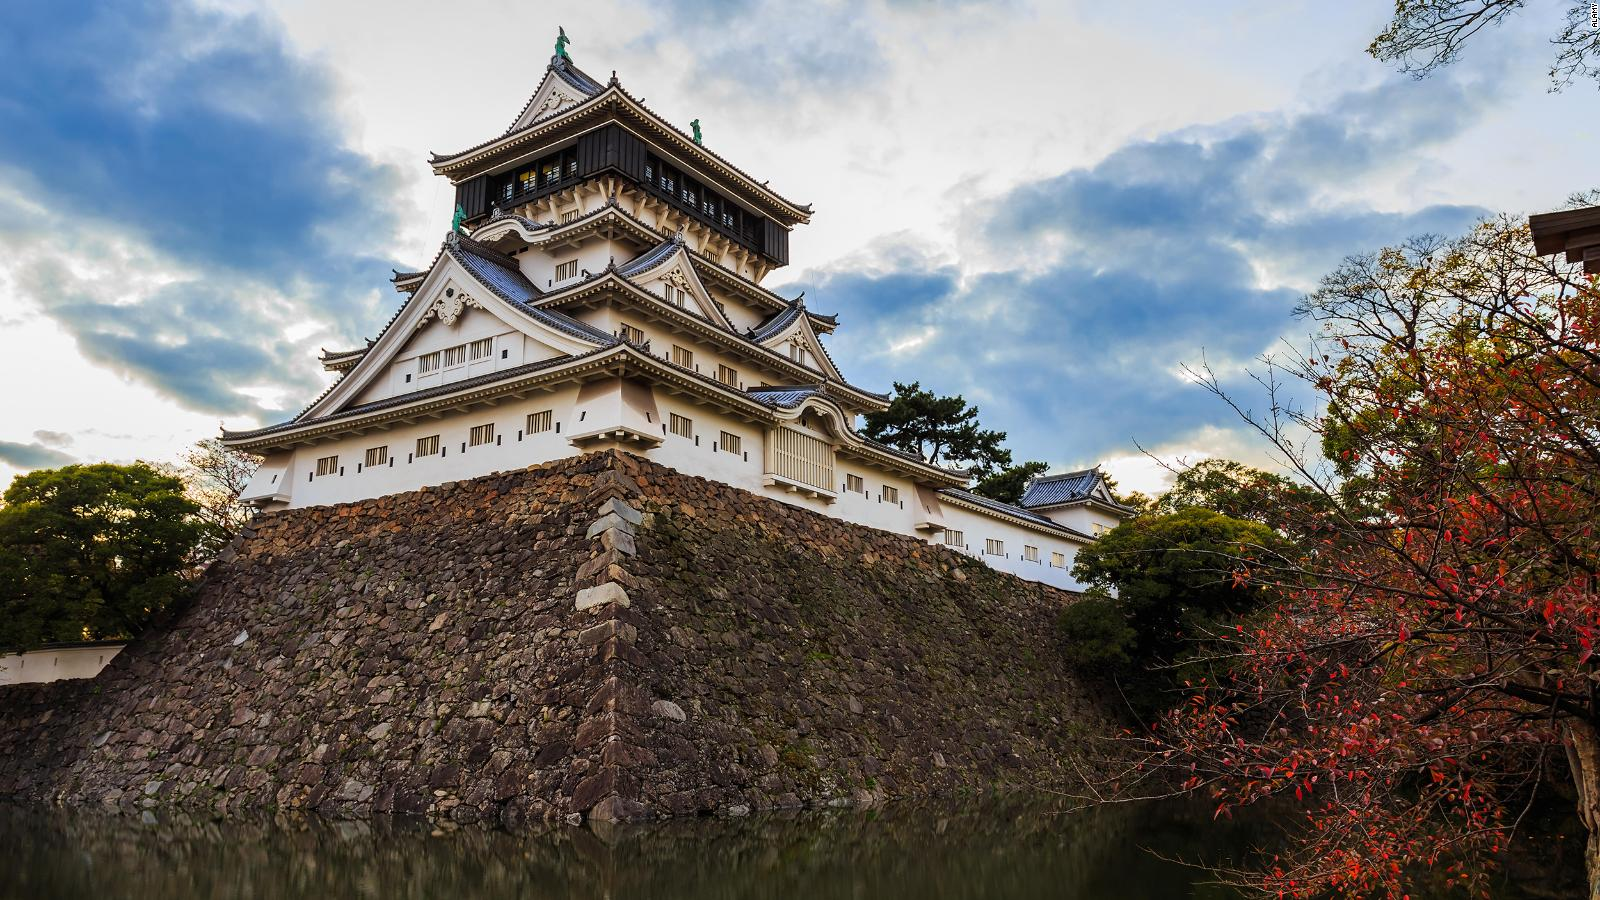 19 best places to visit in 2019 | CNN Travel